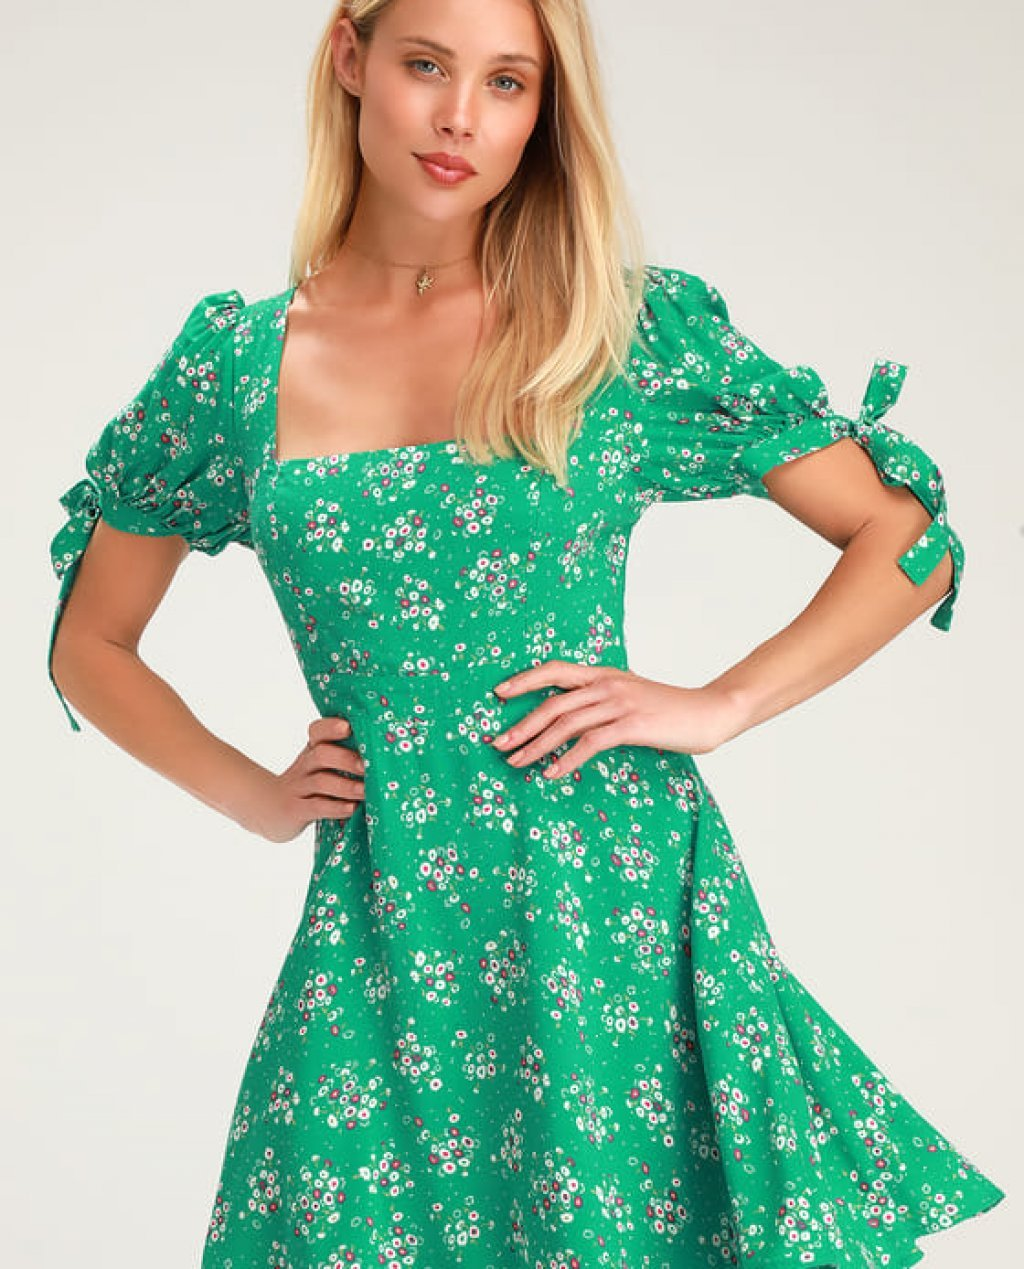 Camellia Curtsies Green Floral Print Skater Dress